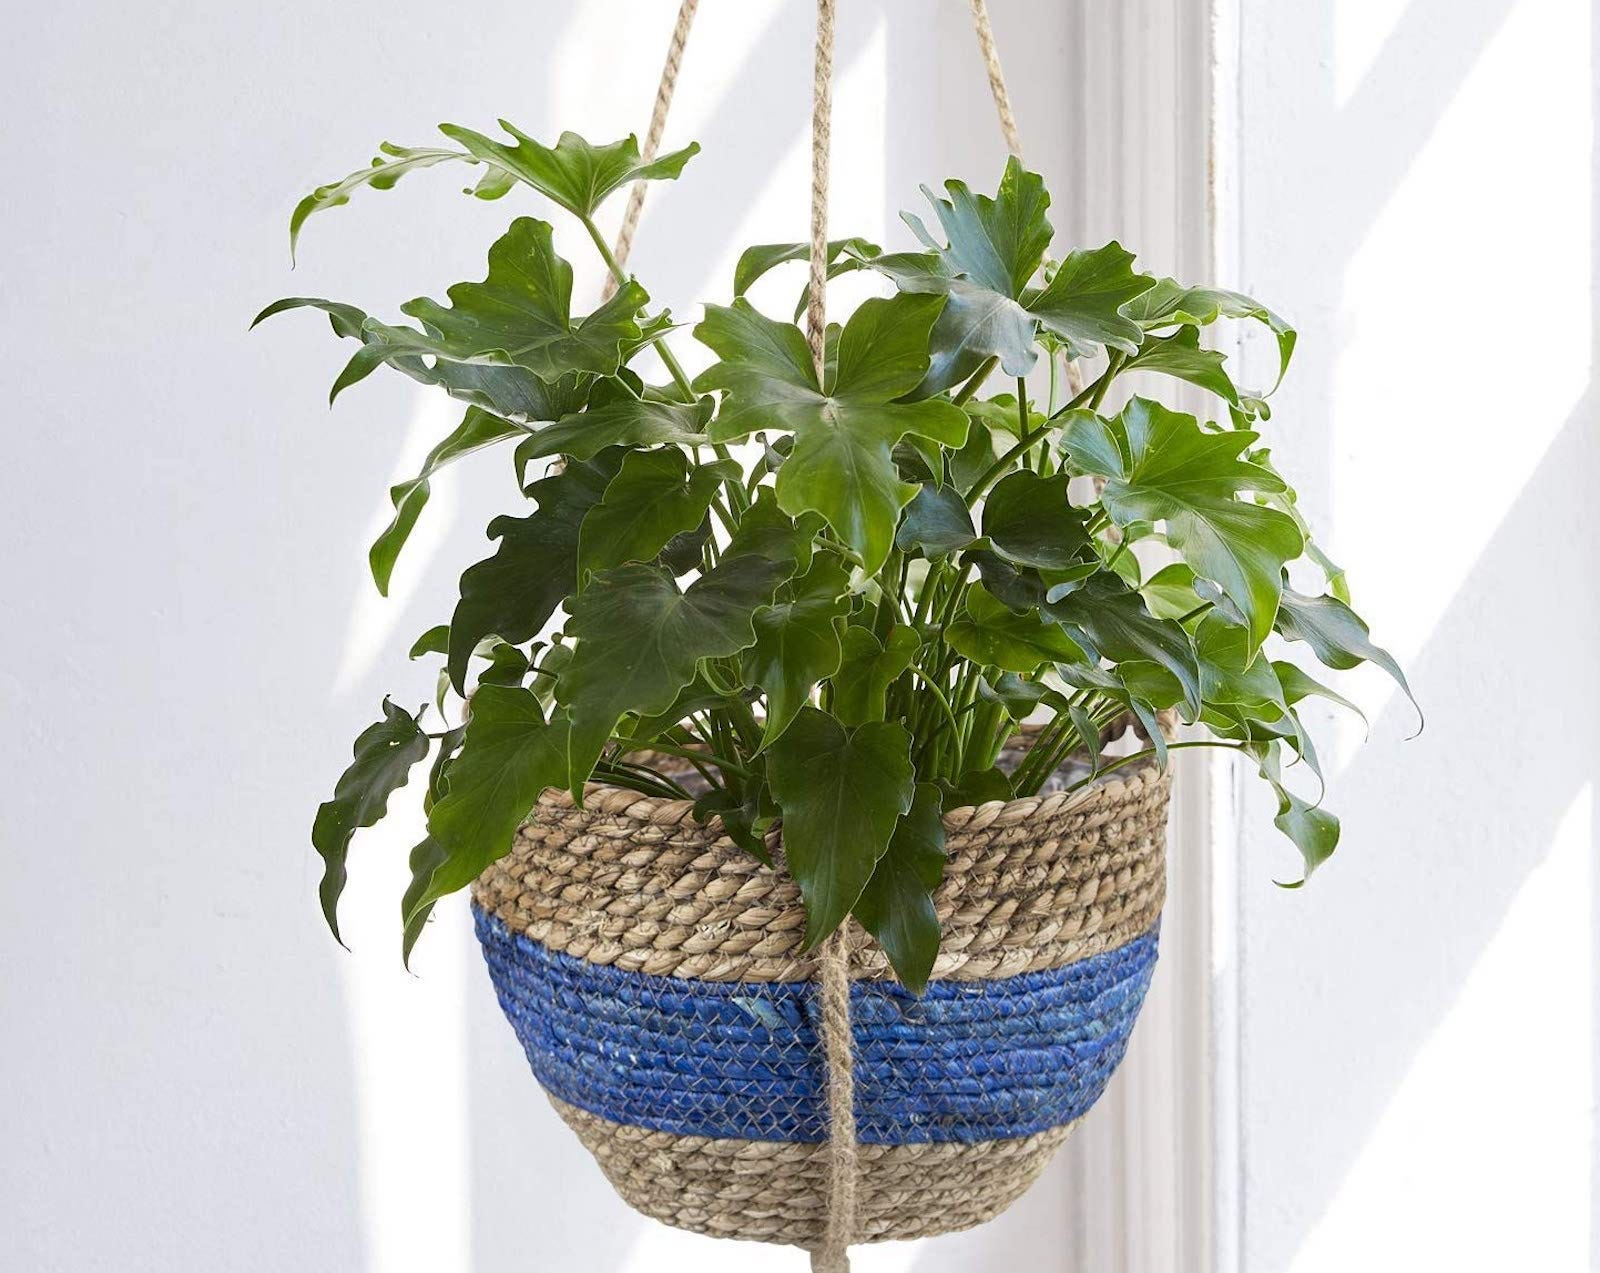 The blue stripe La Jolíe Muse Seagrass Hanging Planter.